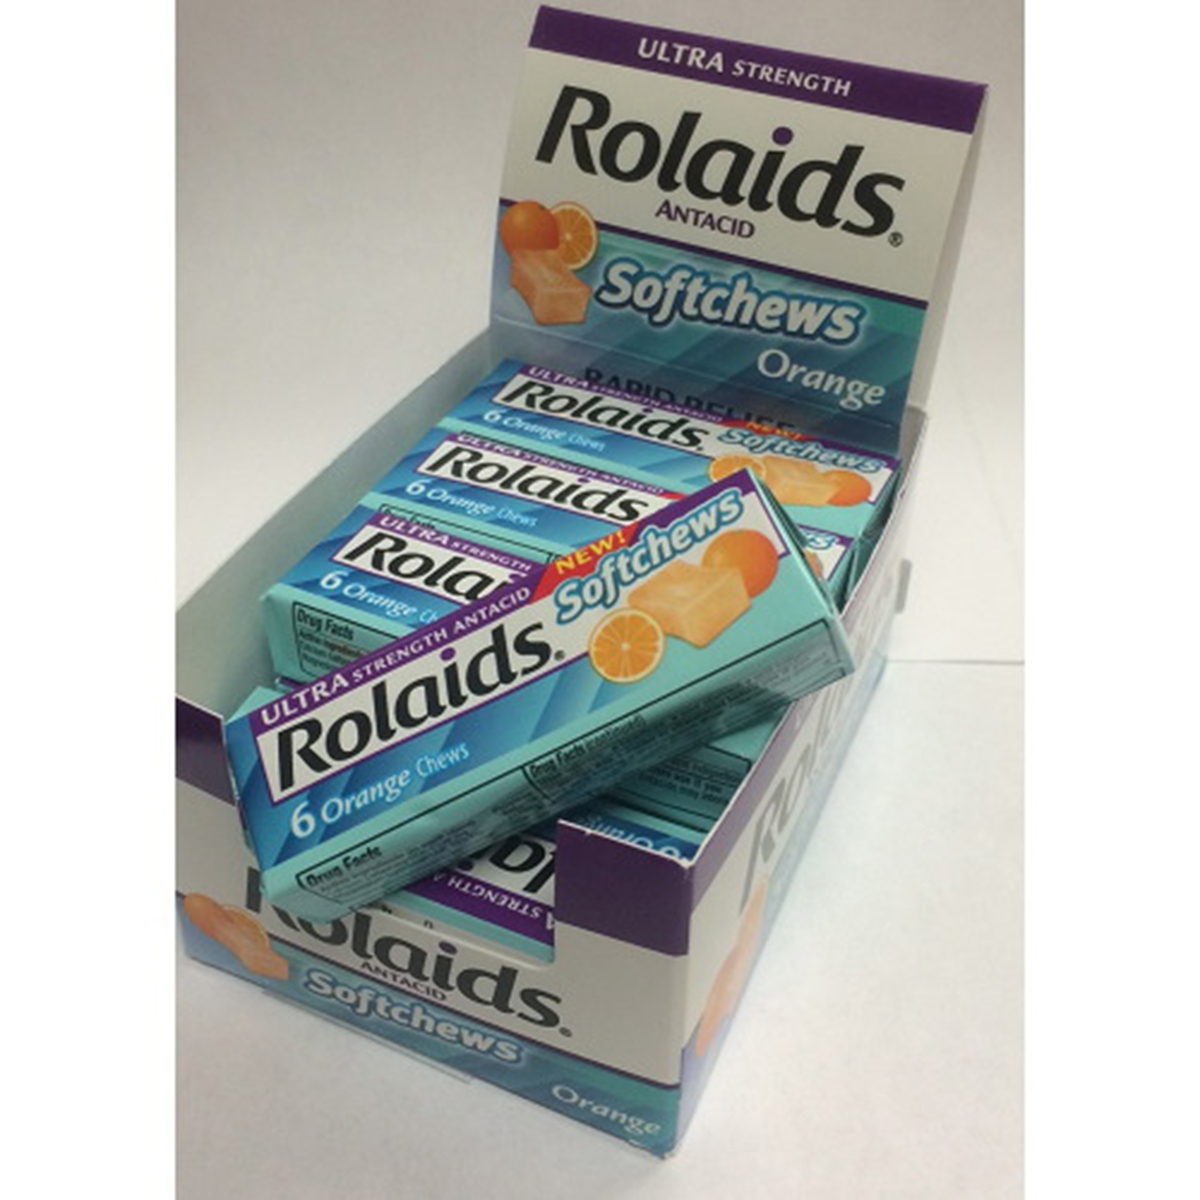 Rolaids Softchews Stick, Orange, 6 Count (Pack of 12)